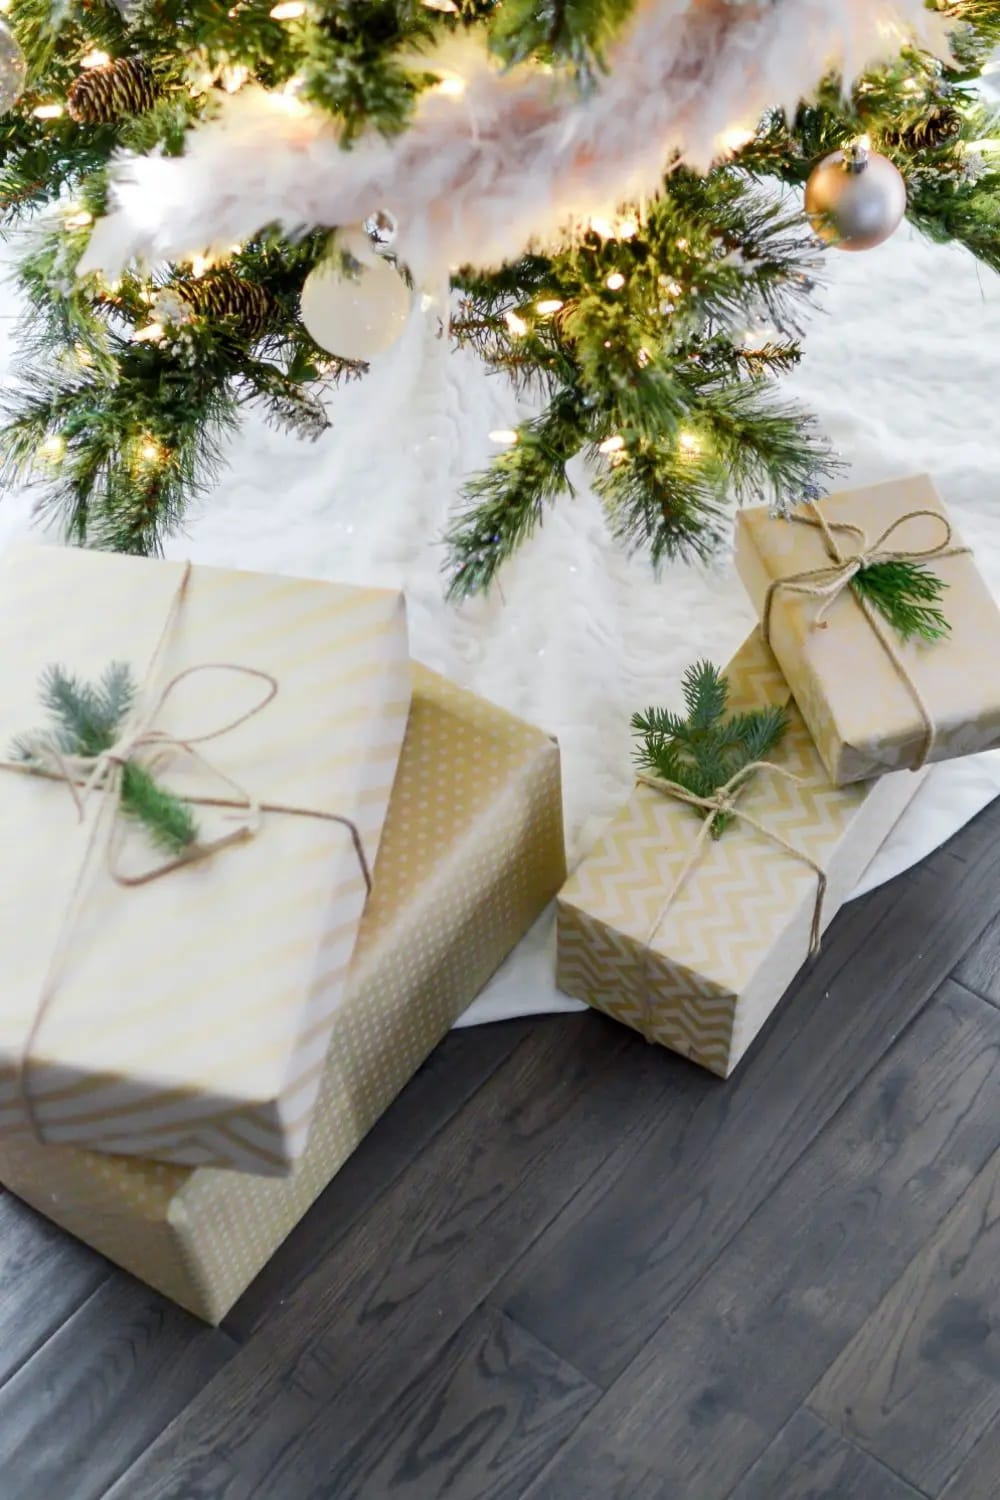 Last Minute Christmas Gifts Featured Image